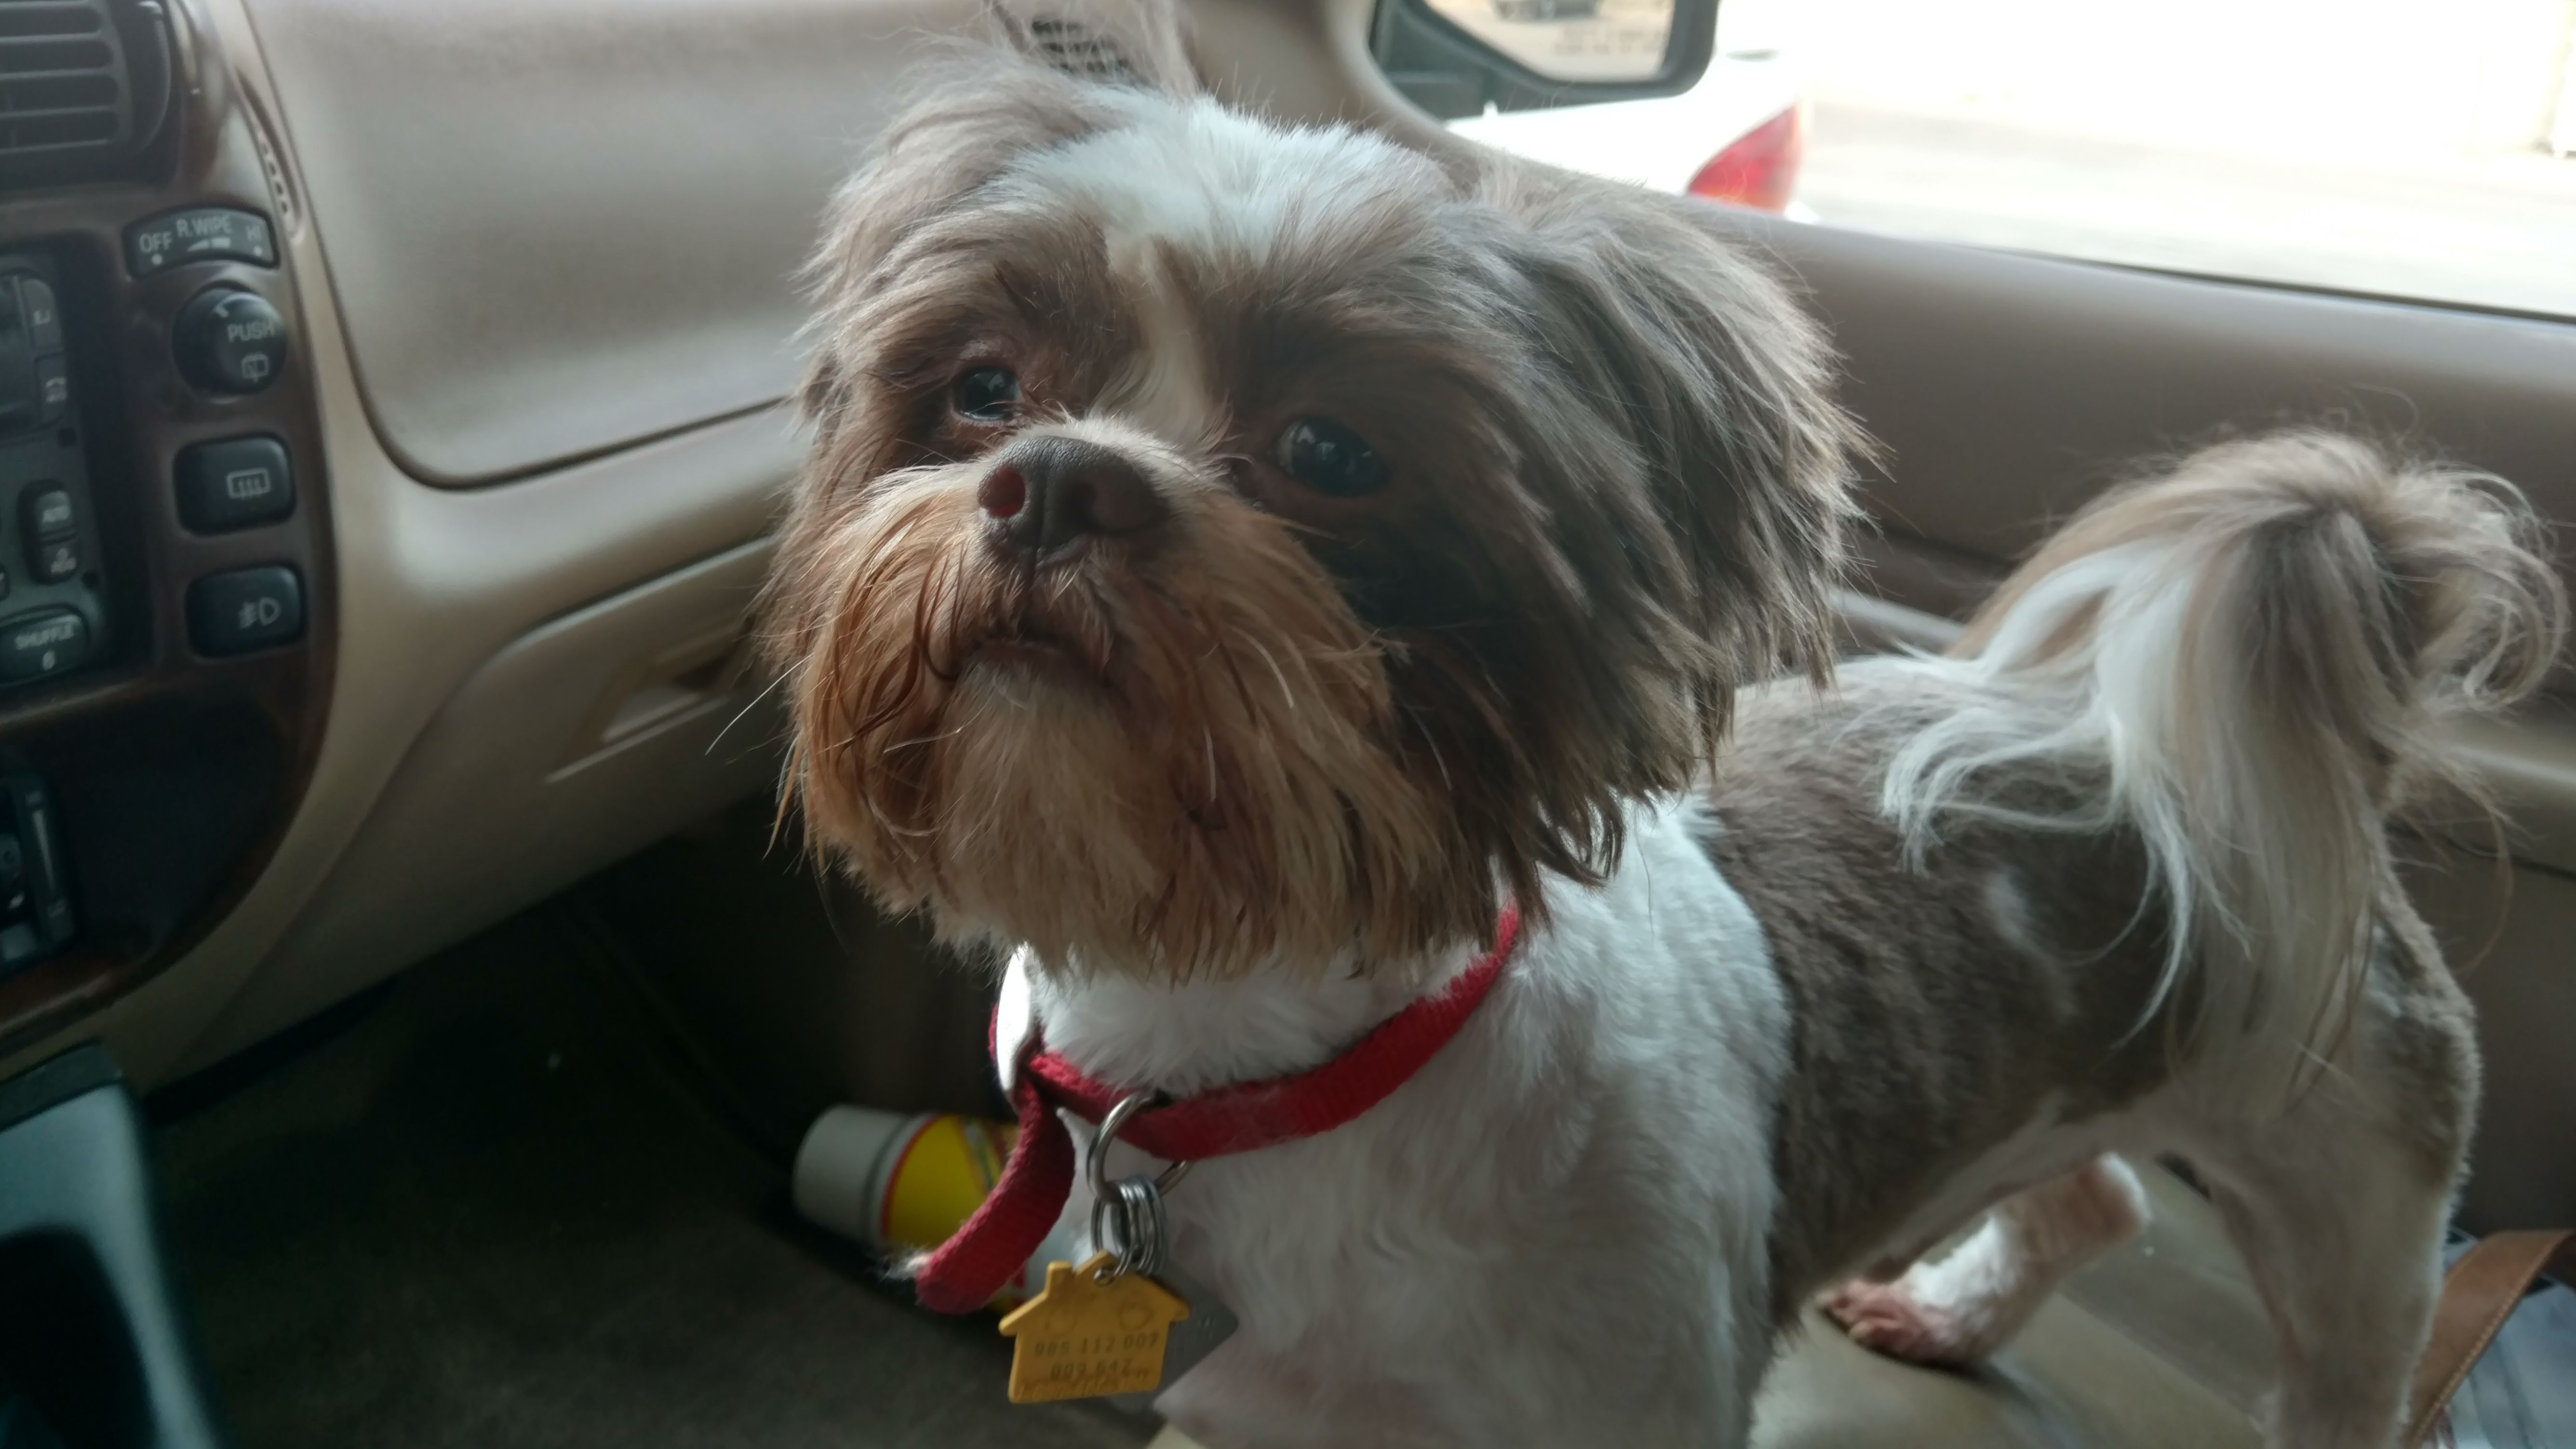 Shih Tzu dog for Adoption in Ft. Worth, TX. ADN533970 on